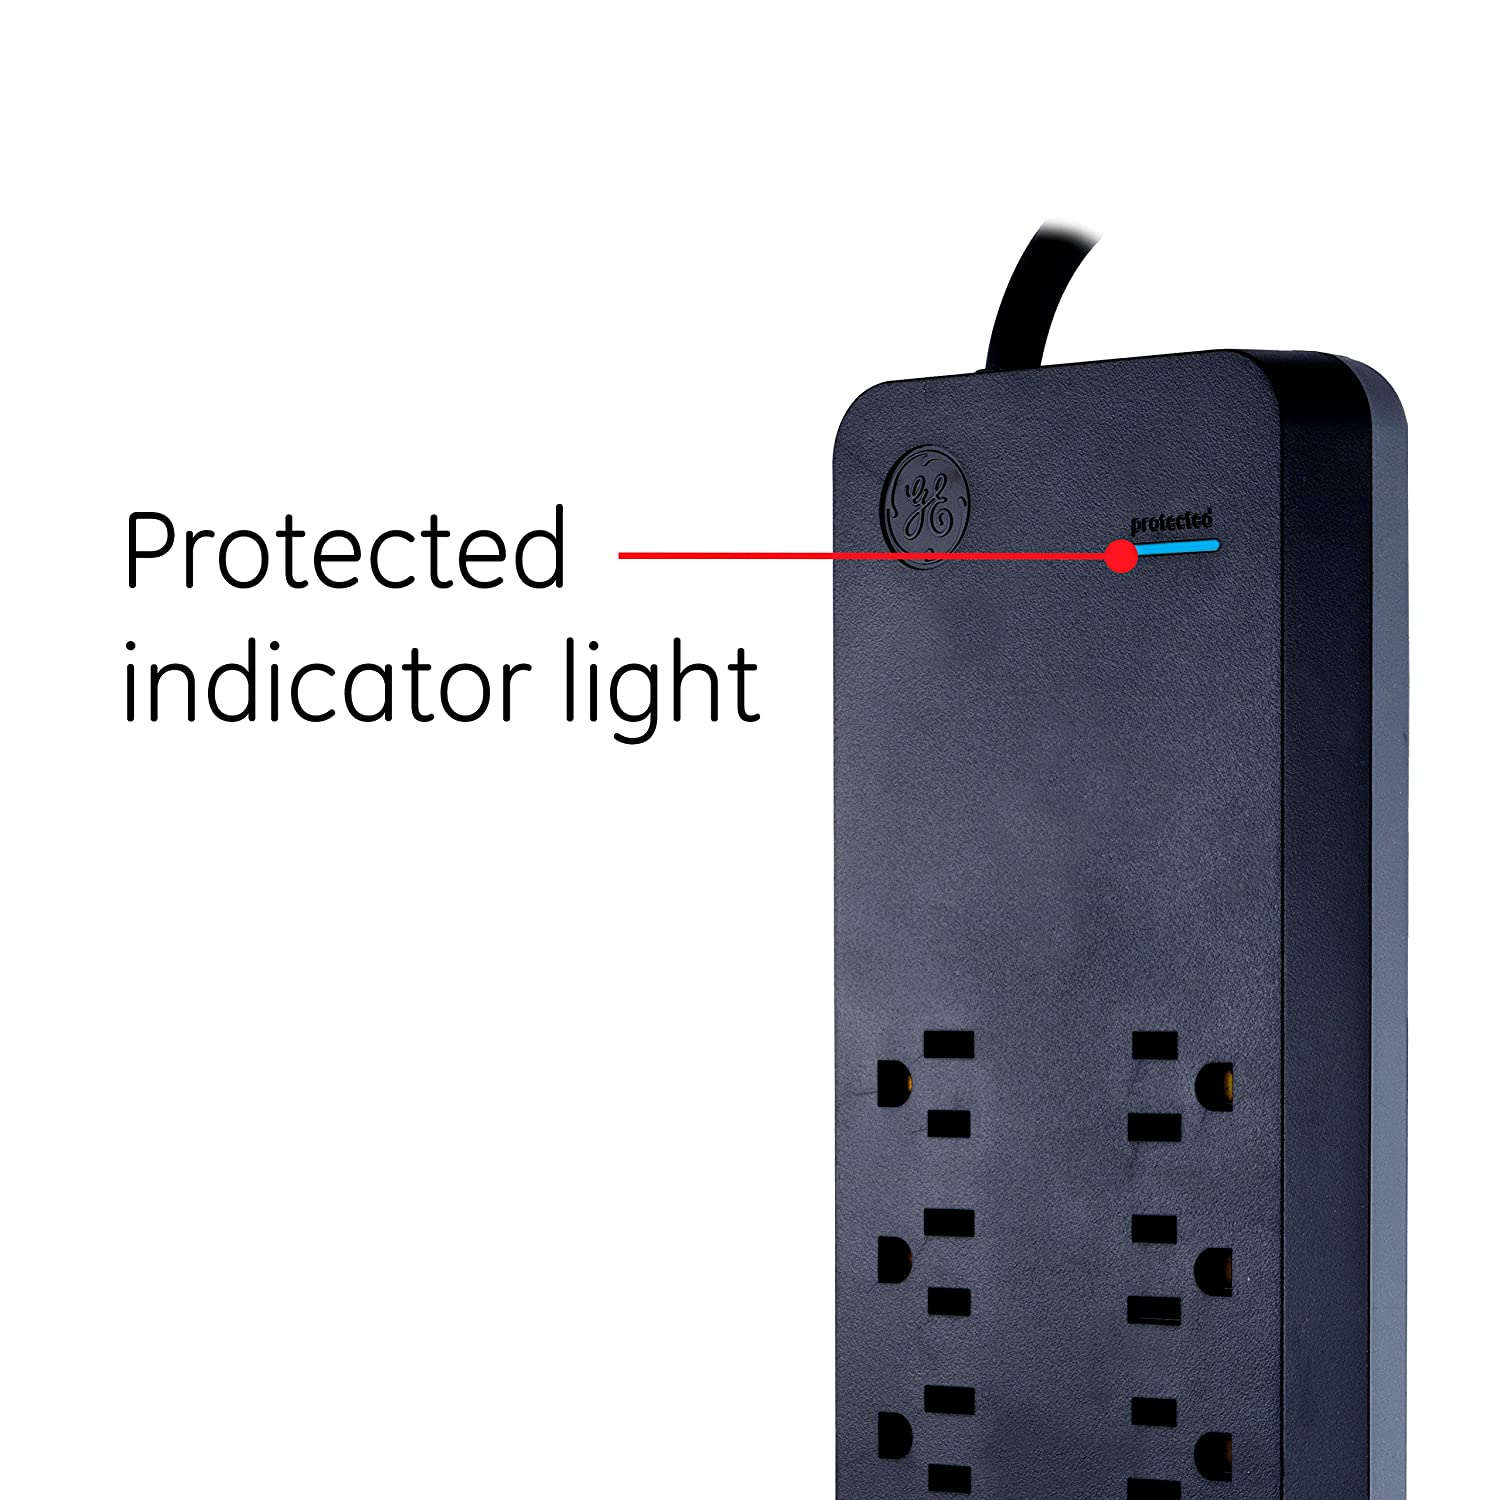 Long Cord GE Power Strip Surge Protector USB Charger Black 2 USB Ports 3ft Fast Charge 37053 Jasco Flat Plug 4 Outlets